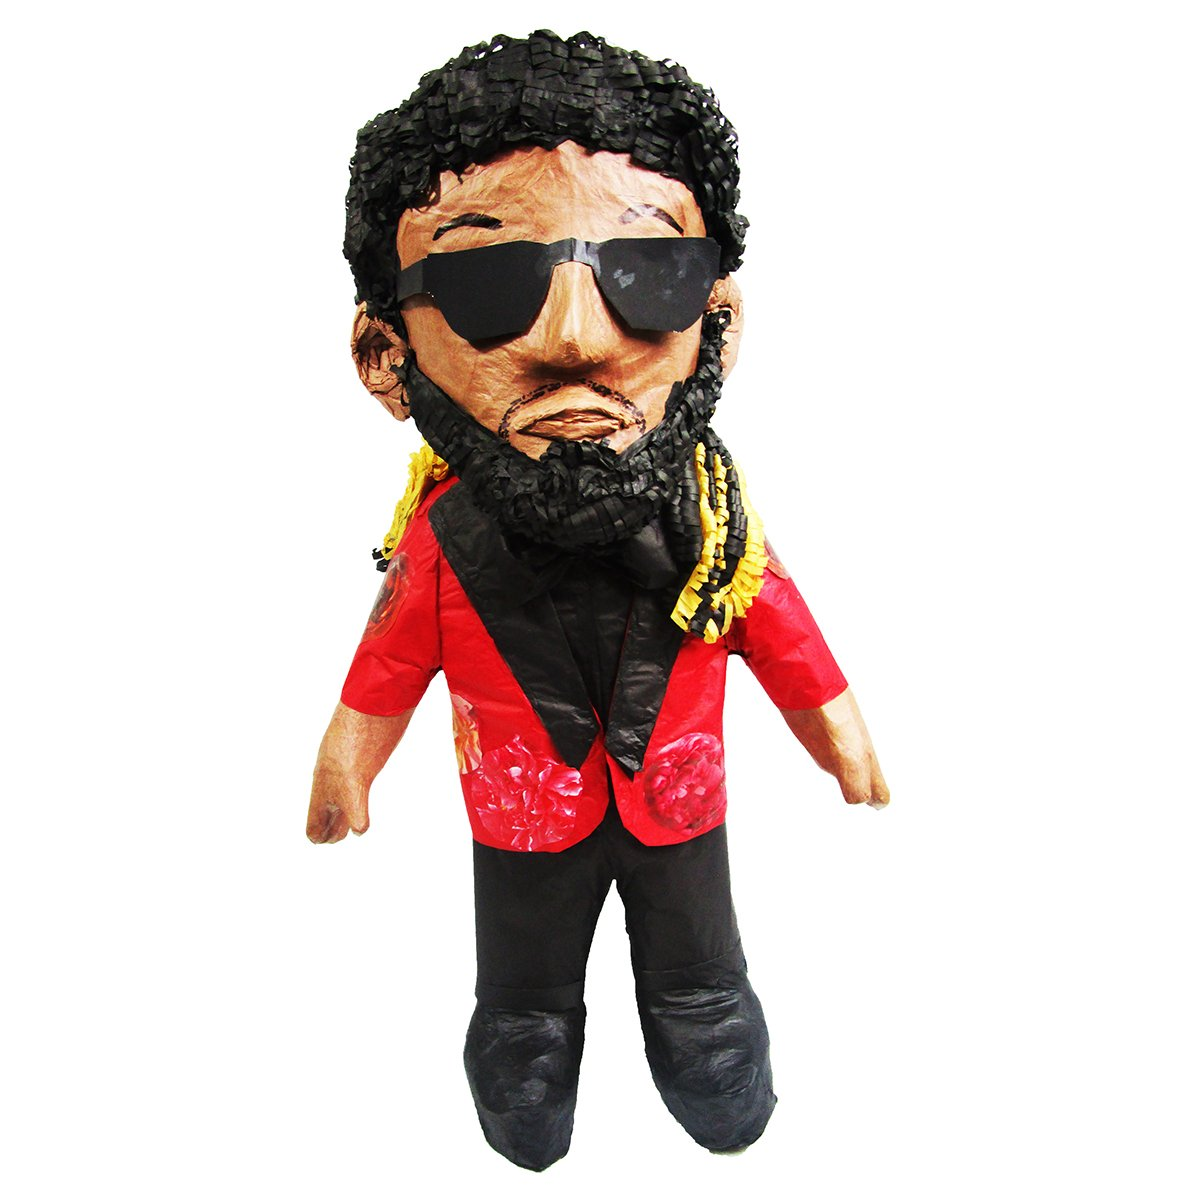 CUSTOM PERSON PINATA - RASTA